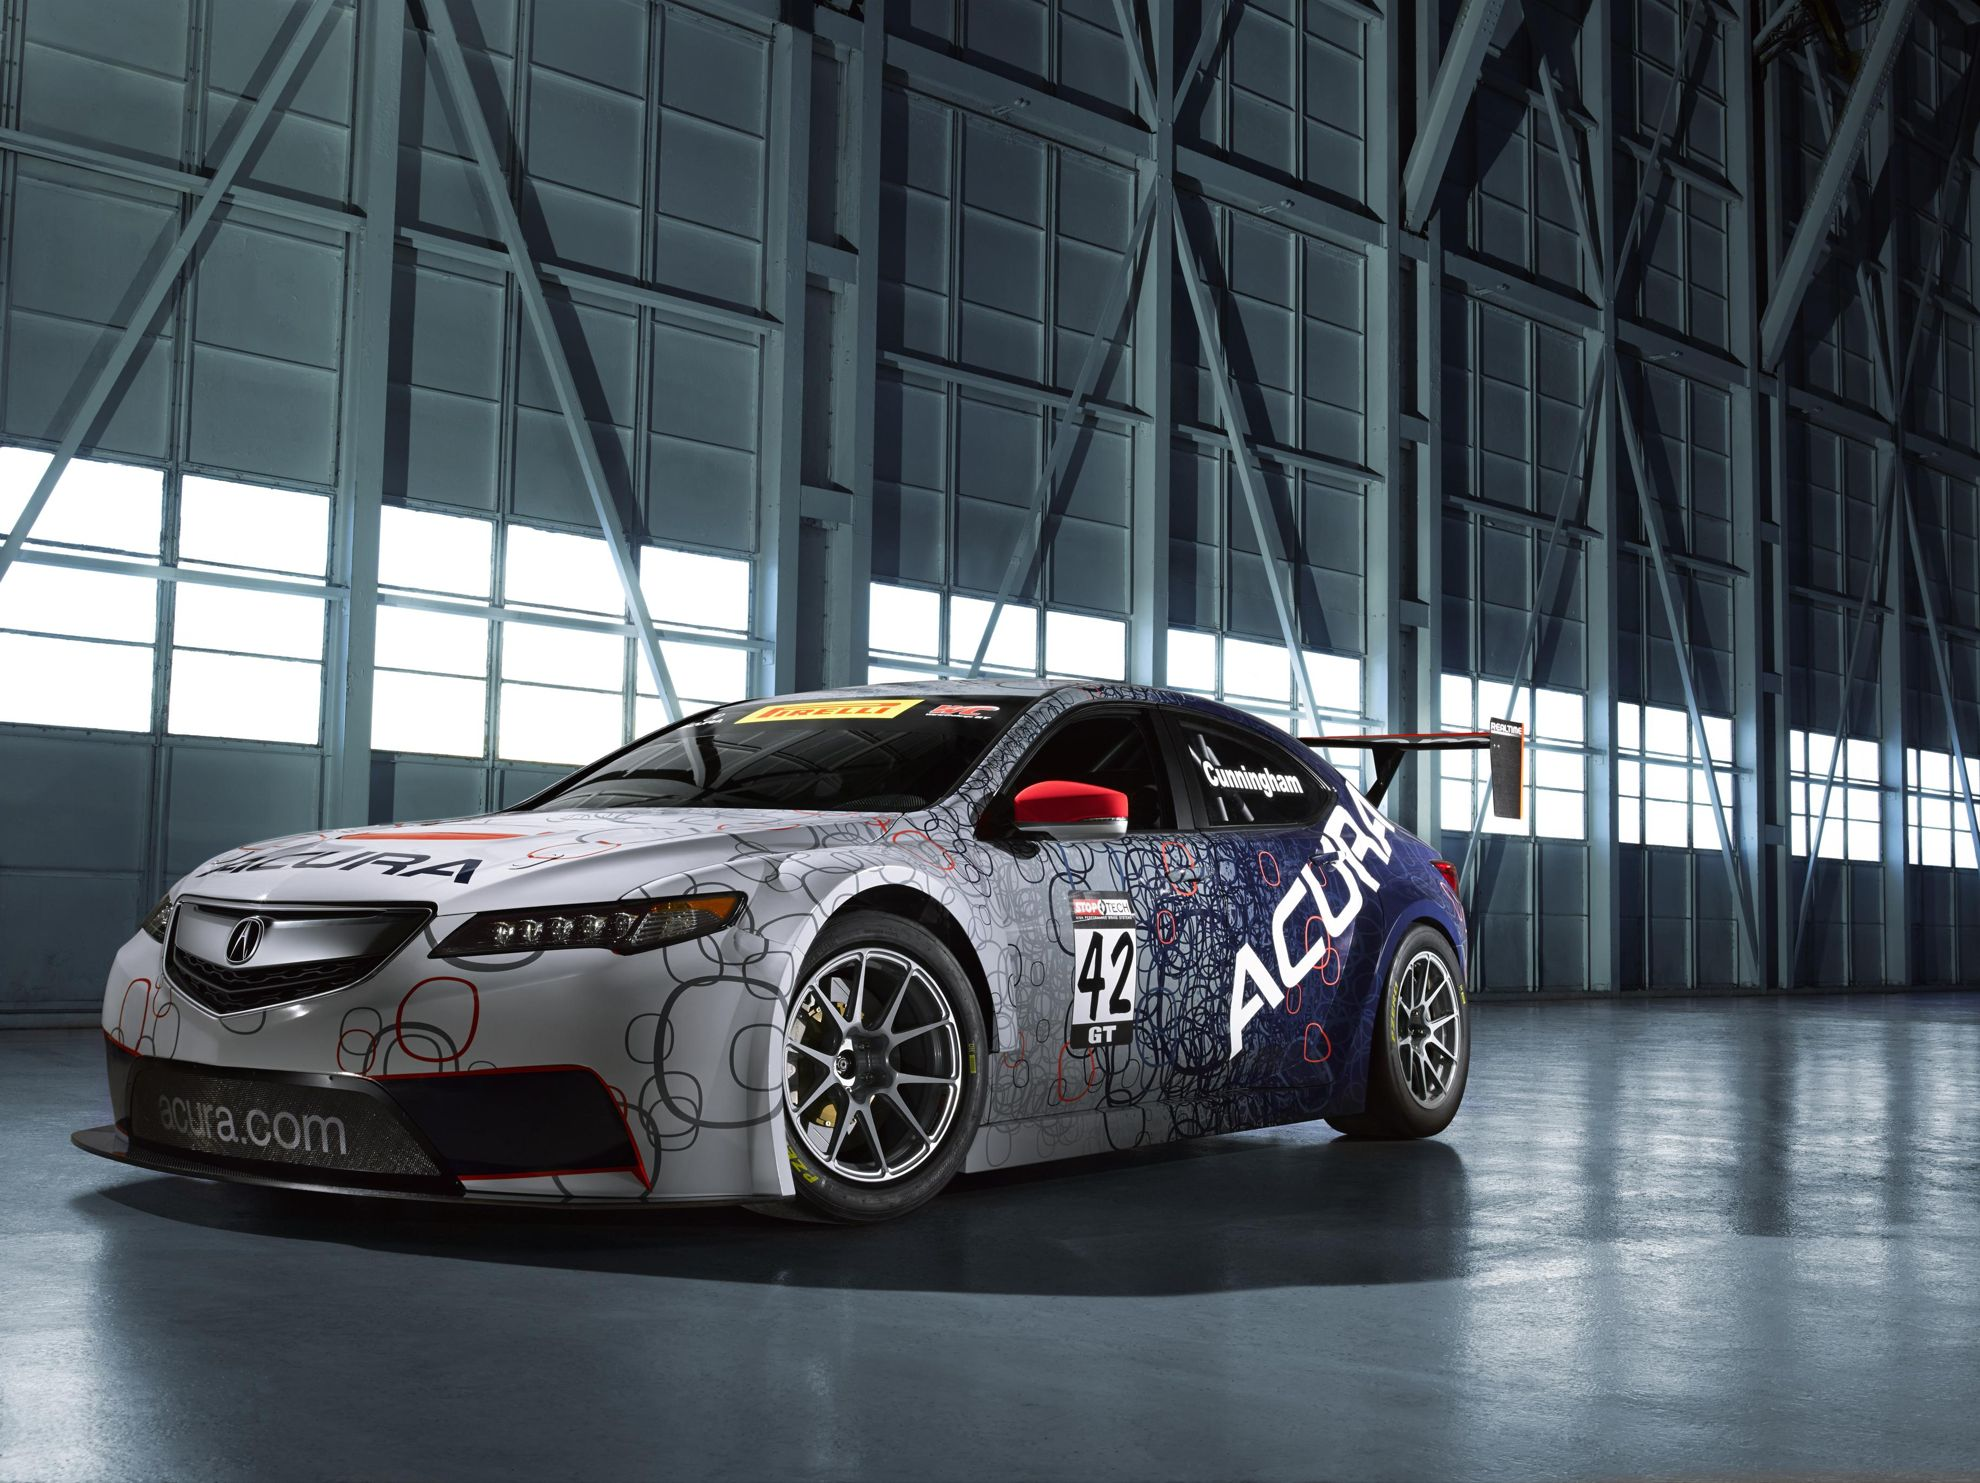 ACURA TLX GT RACE CAR UNVEILED AT NORTH AMERICAN INTERNATIONAL AUTO on